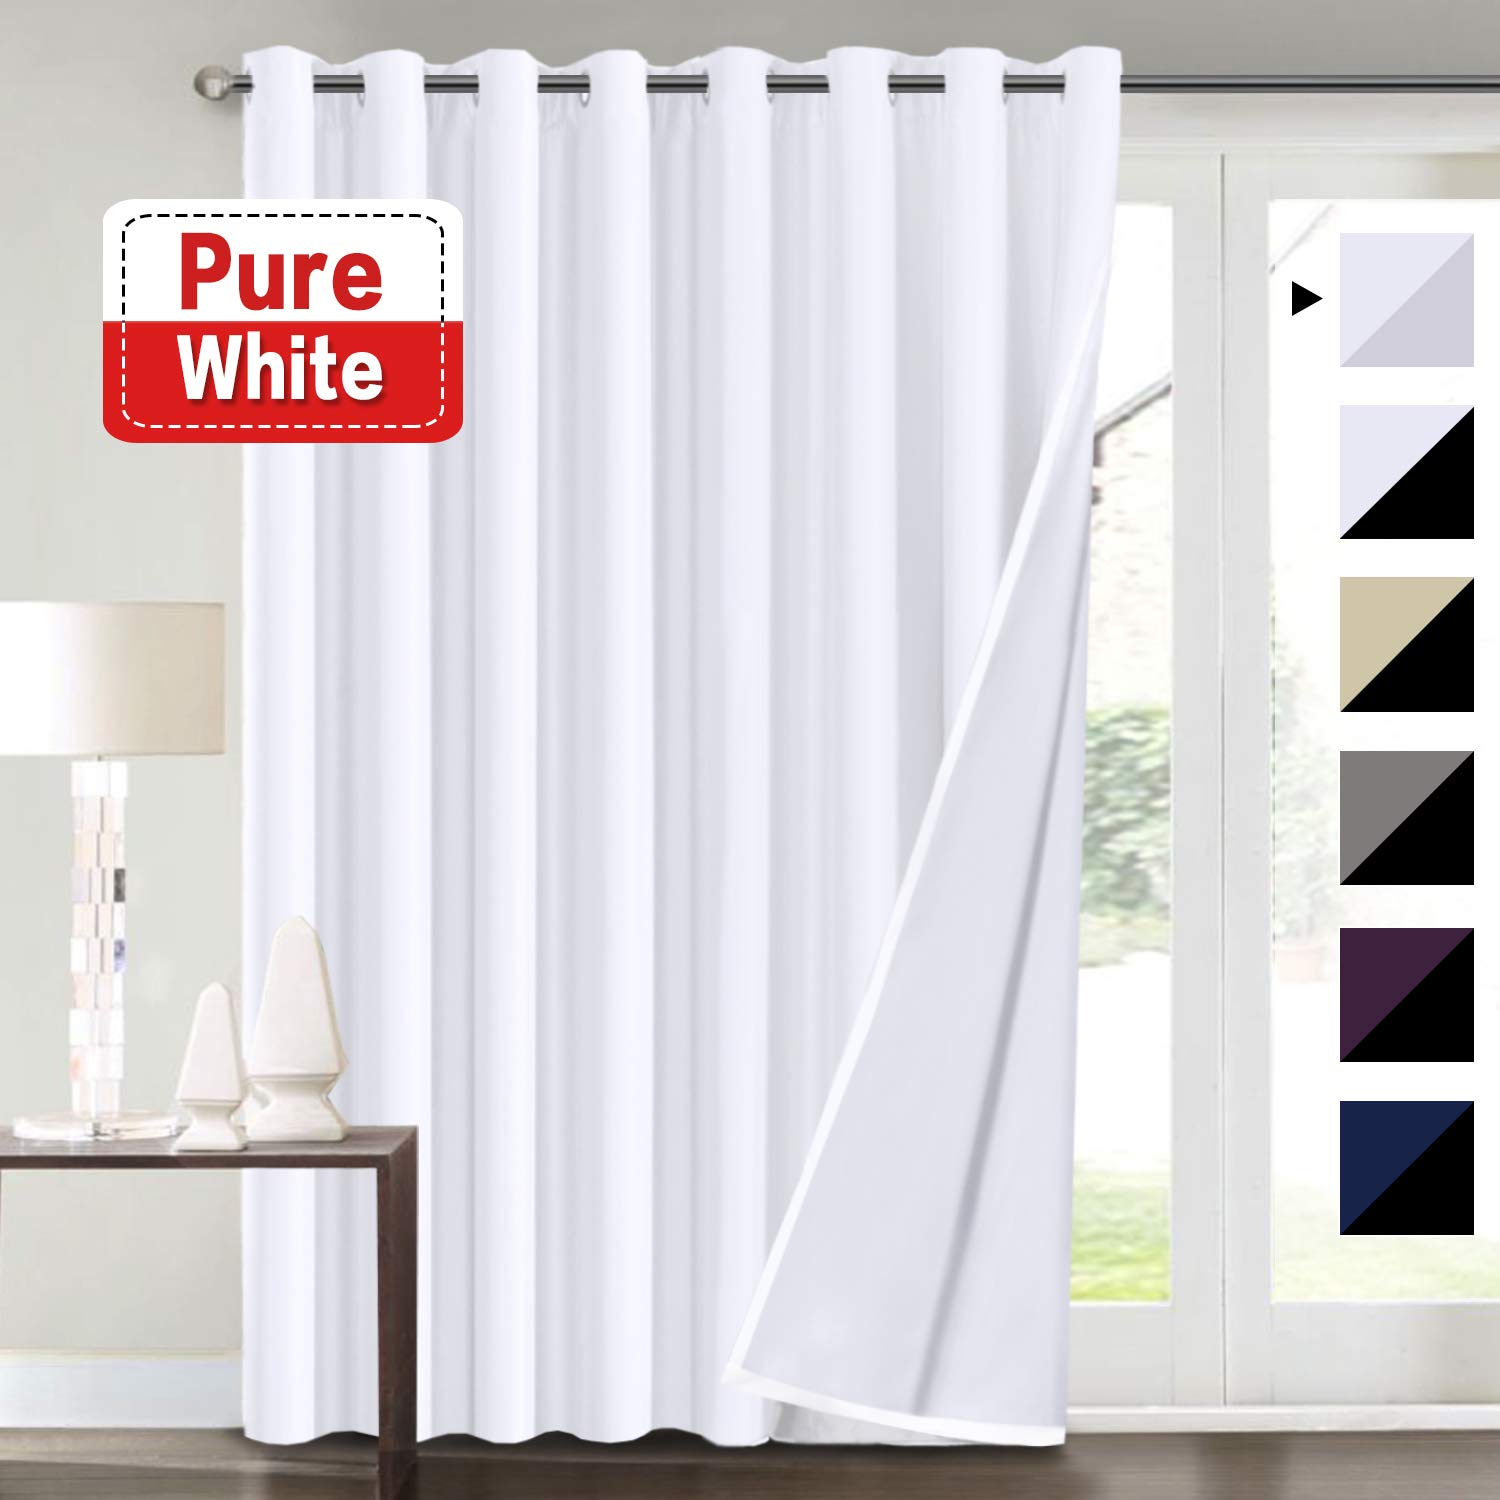 Extra Wide Blackout White Curtains 100x84 for Bedroom Blackout Curtains for Patio Door, Energy Saving Thermal Insulated Lined Curtains, Grommet Top, Pure White